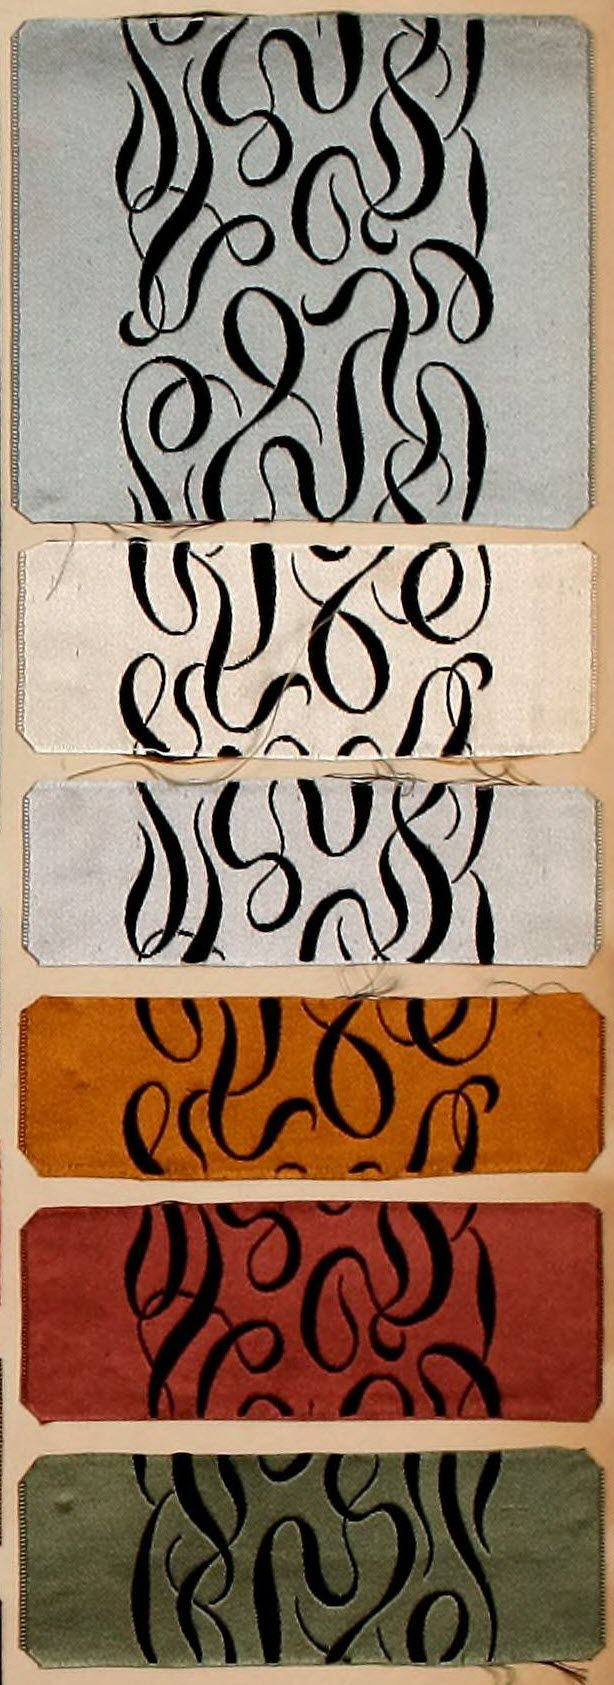 silk ribbons and trims, 1886 | Mary Ann Beinecke Decorative Art Collection. Sterling and Francine Clark Art Institute Library. http://archive.org/stream/silkribbonstrims00elem#page/n79/mode/1up